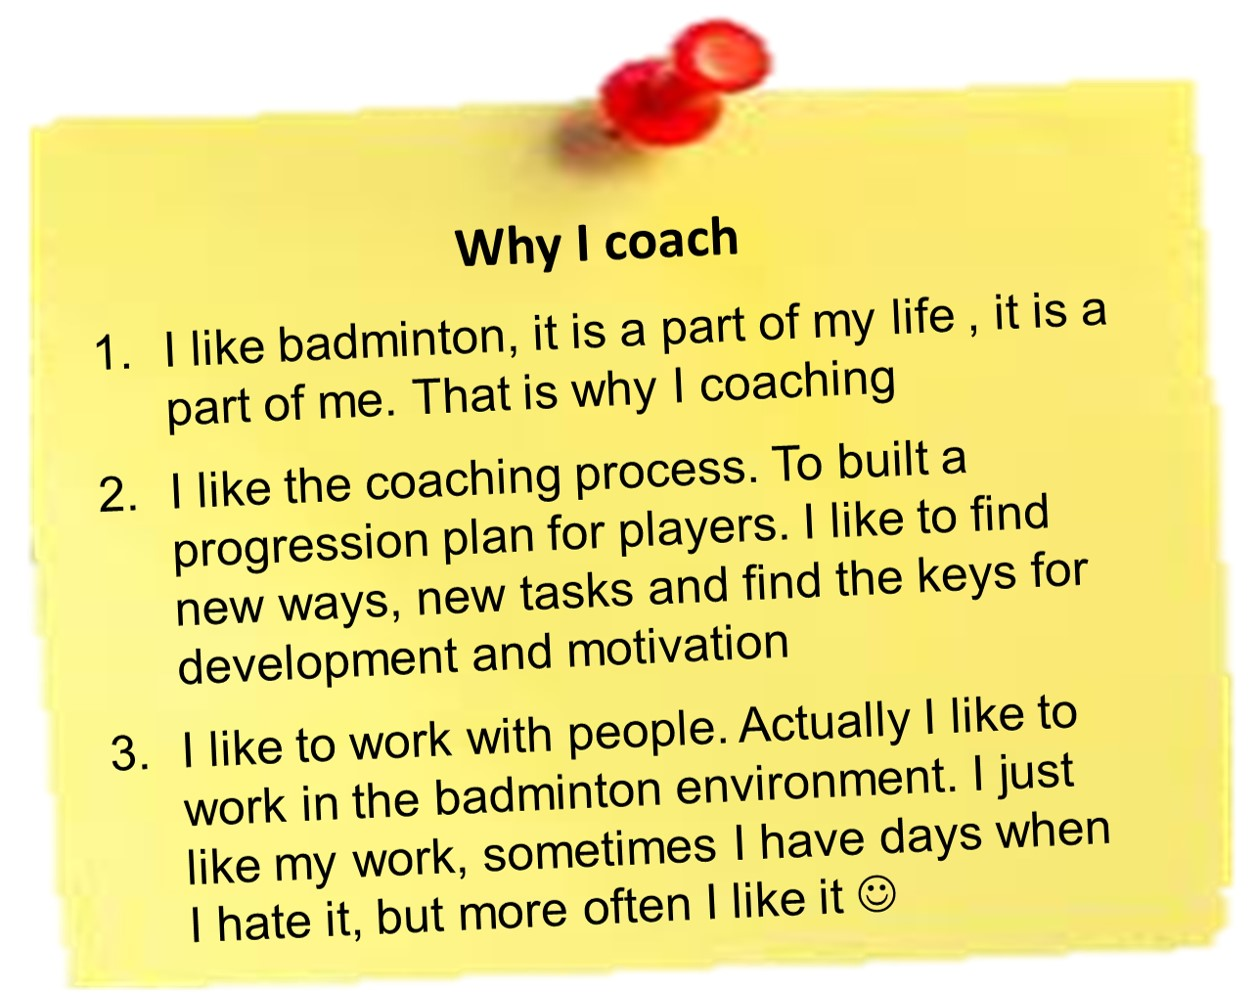 3 reasons why I coach and how they help prevent burnout